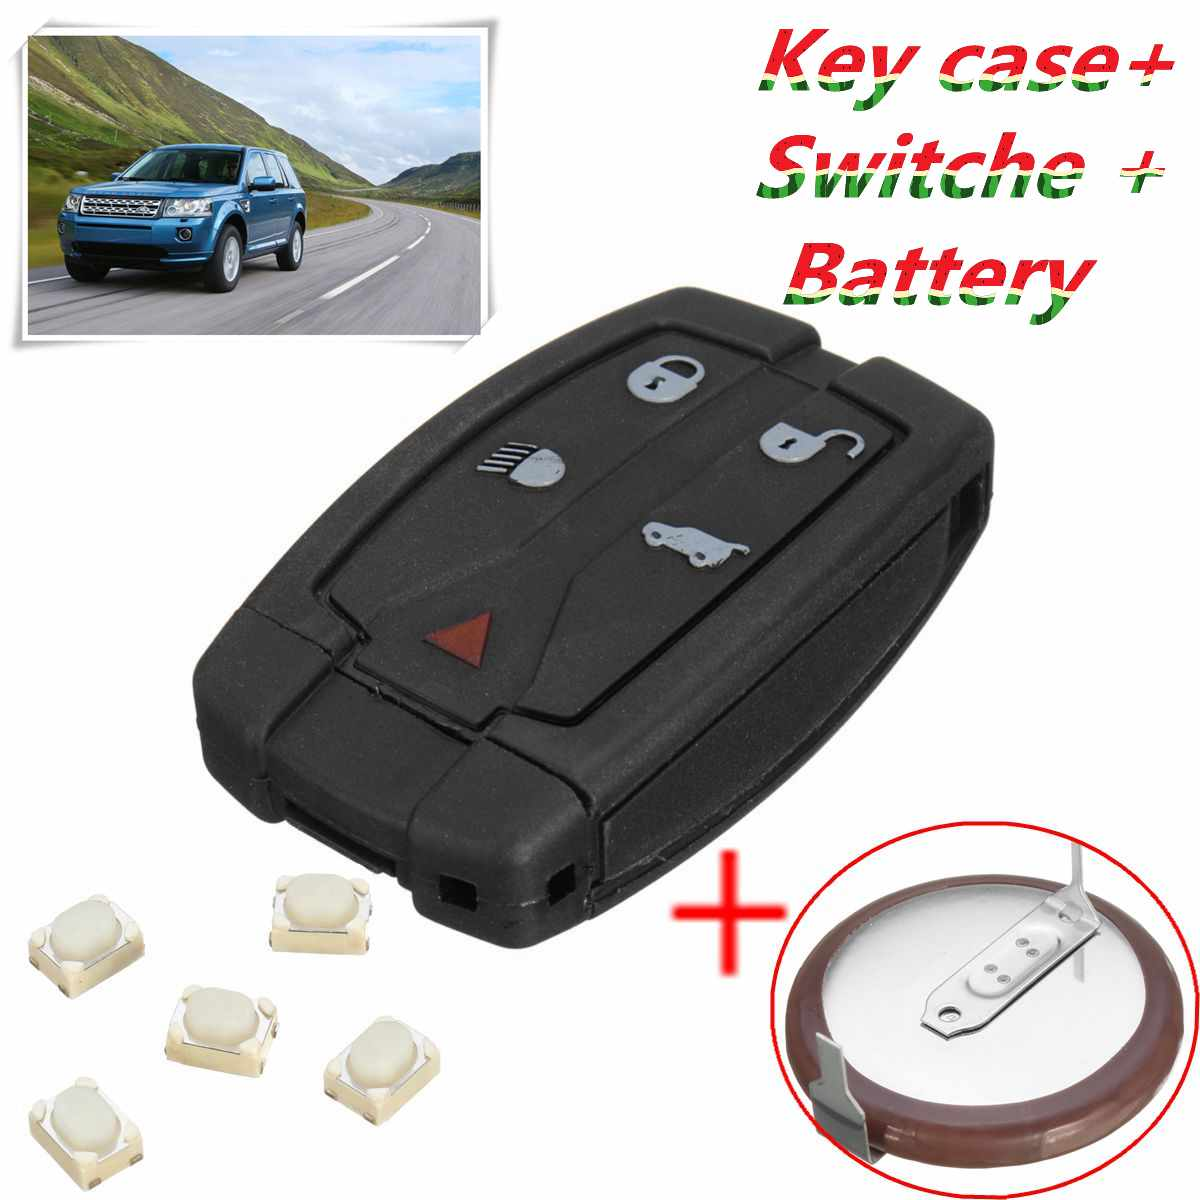 5 Button Remote Key Case/ Recase/ Battery Repair Kit For Land Rover Freelander 2 цена